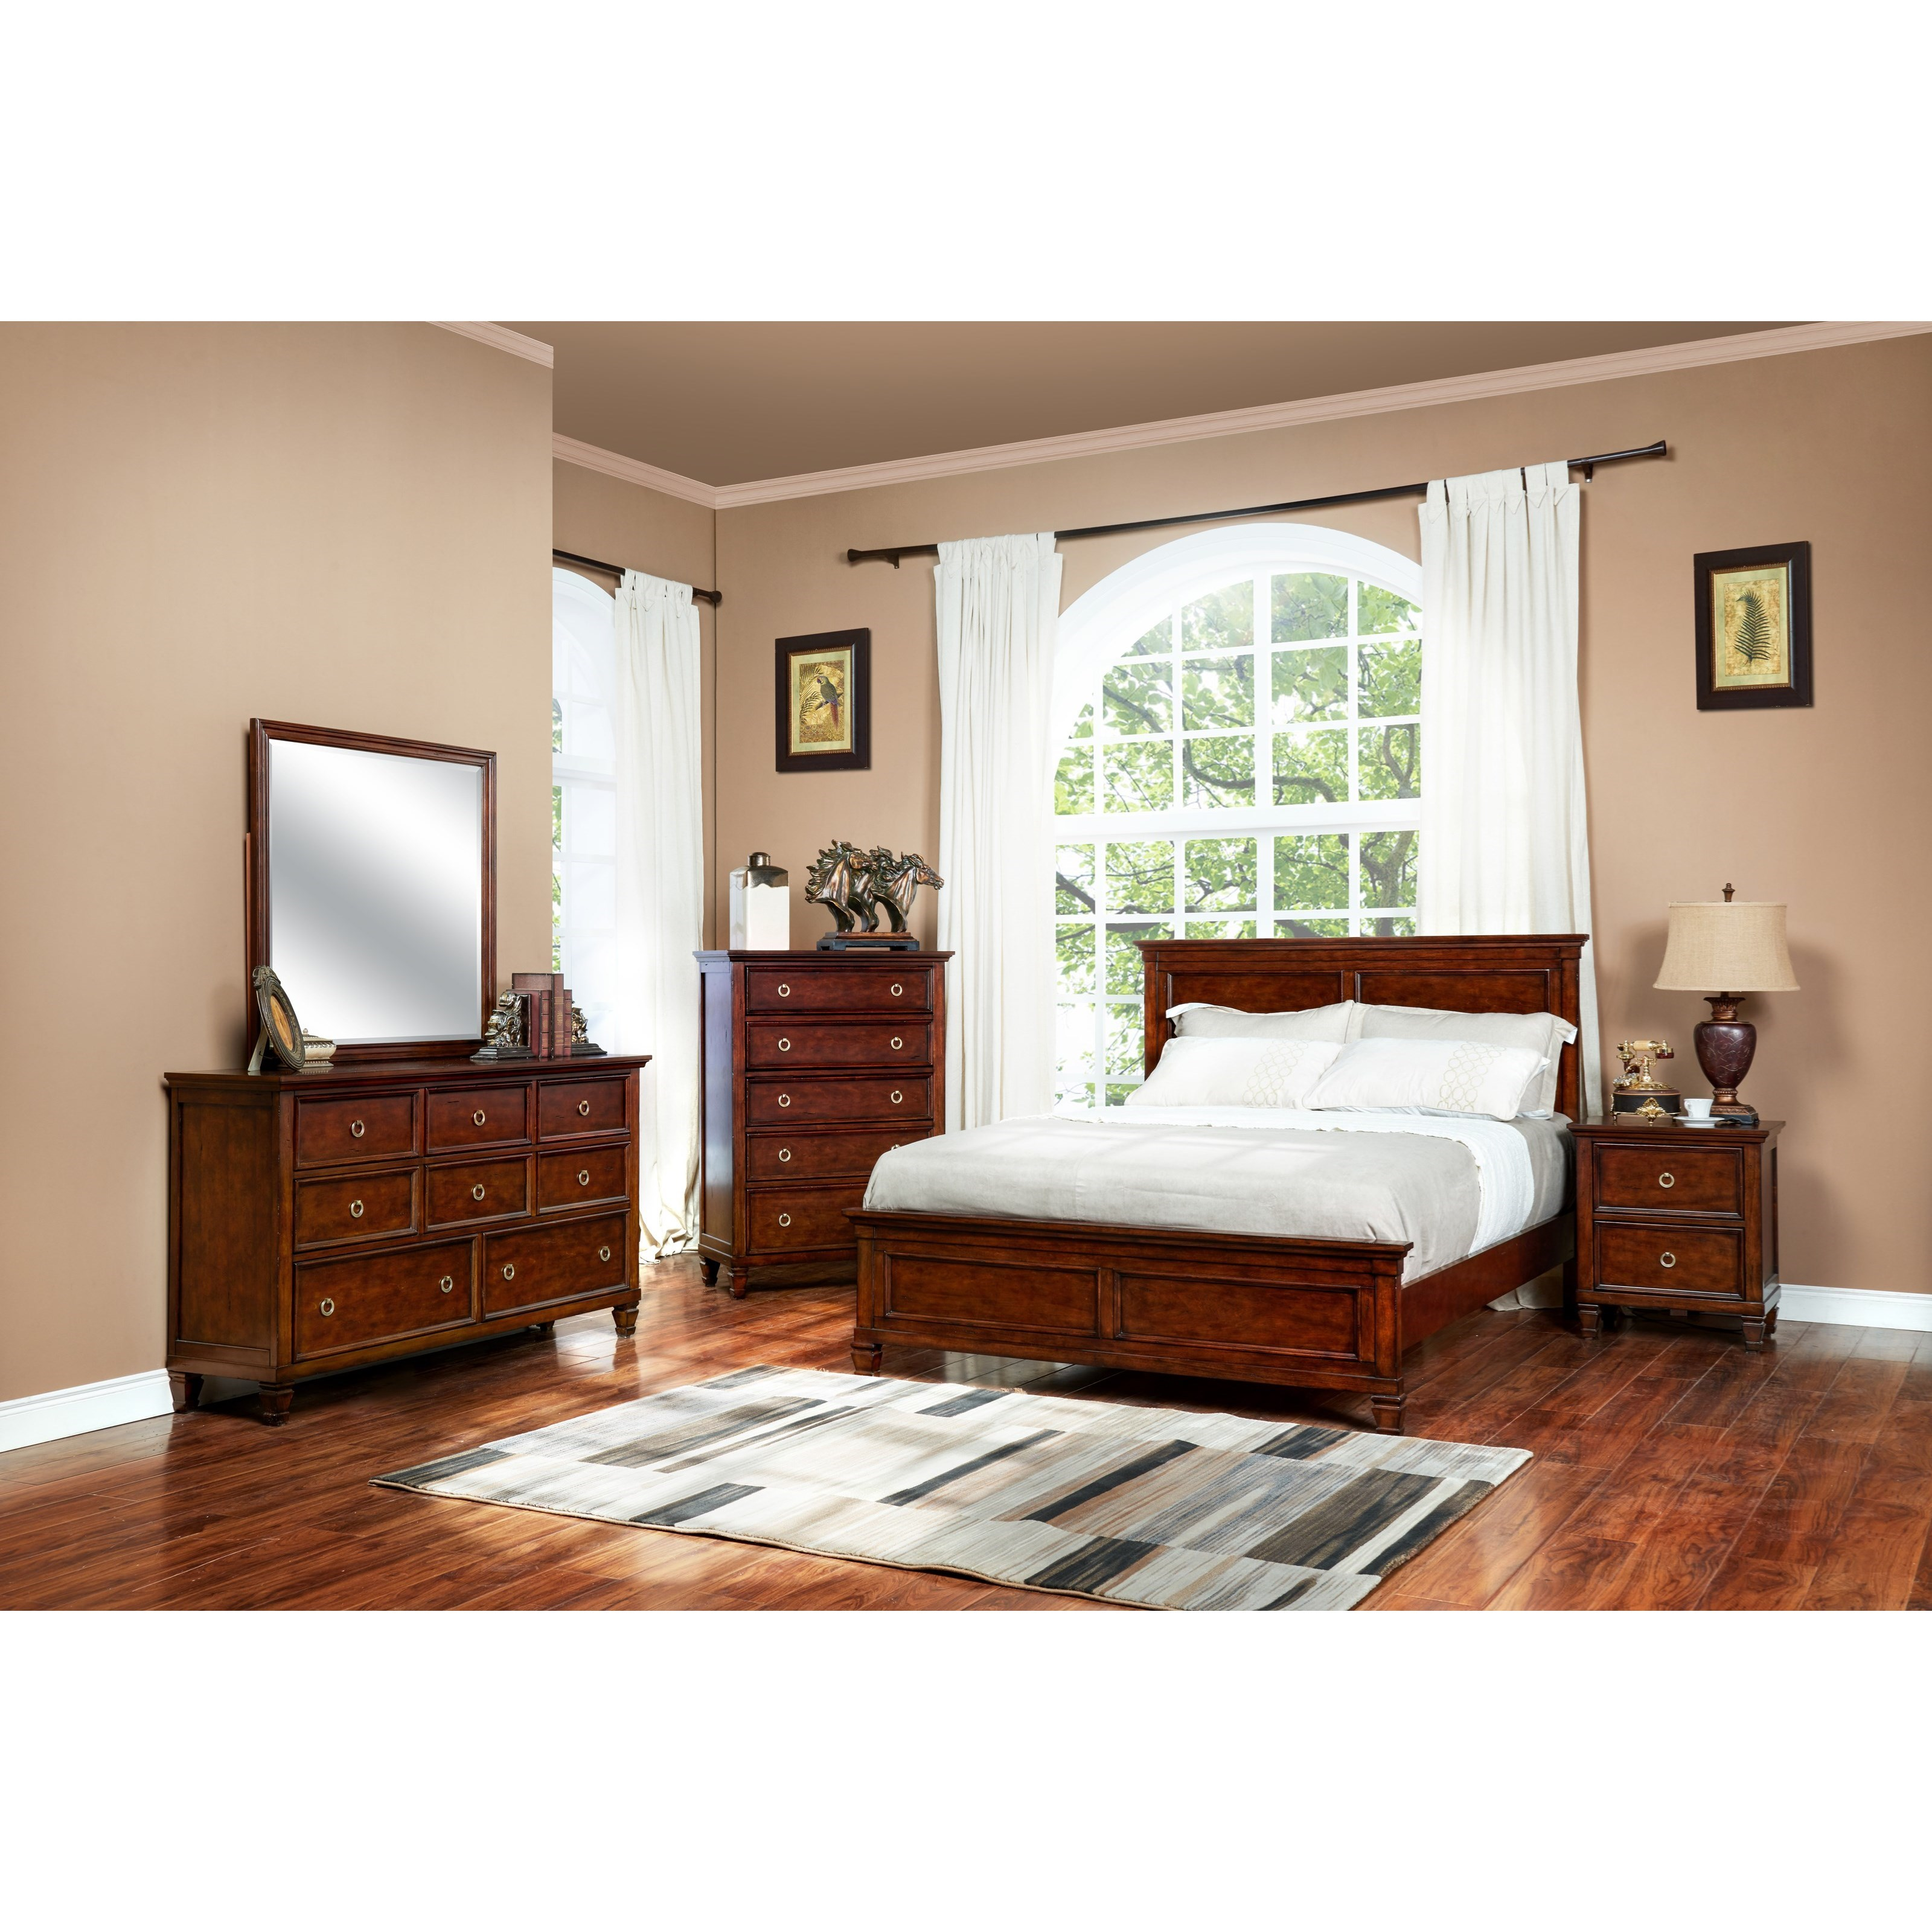 Tamarack King Bedroom Group by New Classic at Darvin Furniture